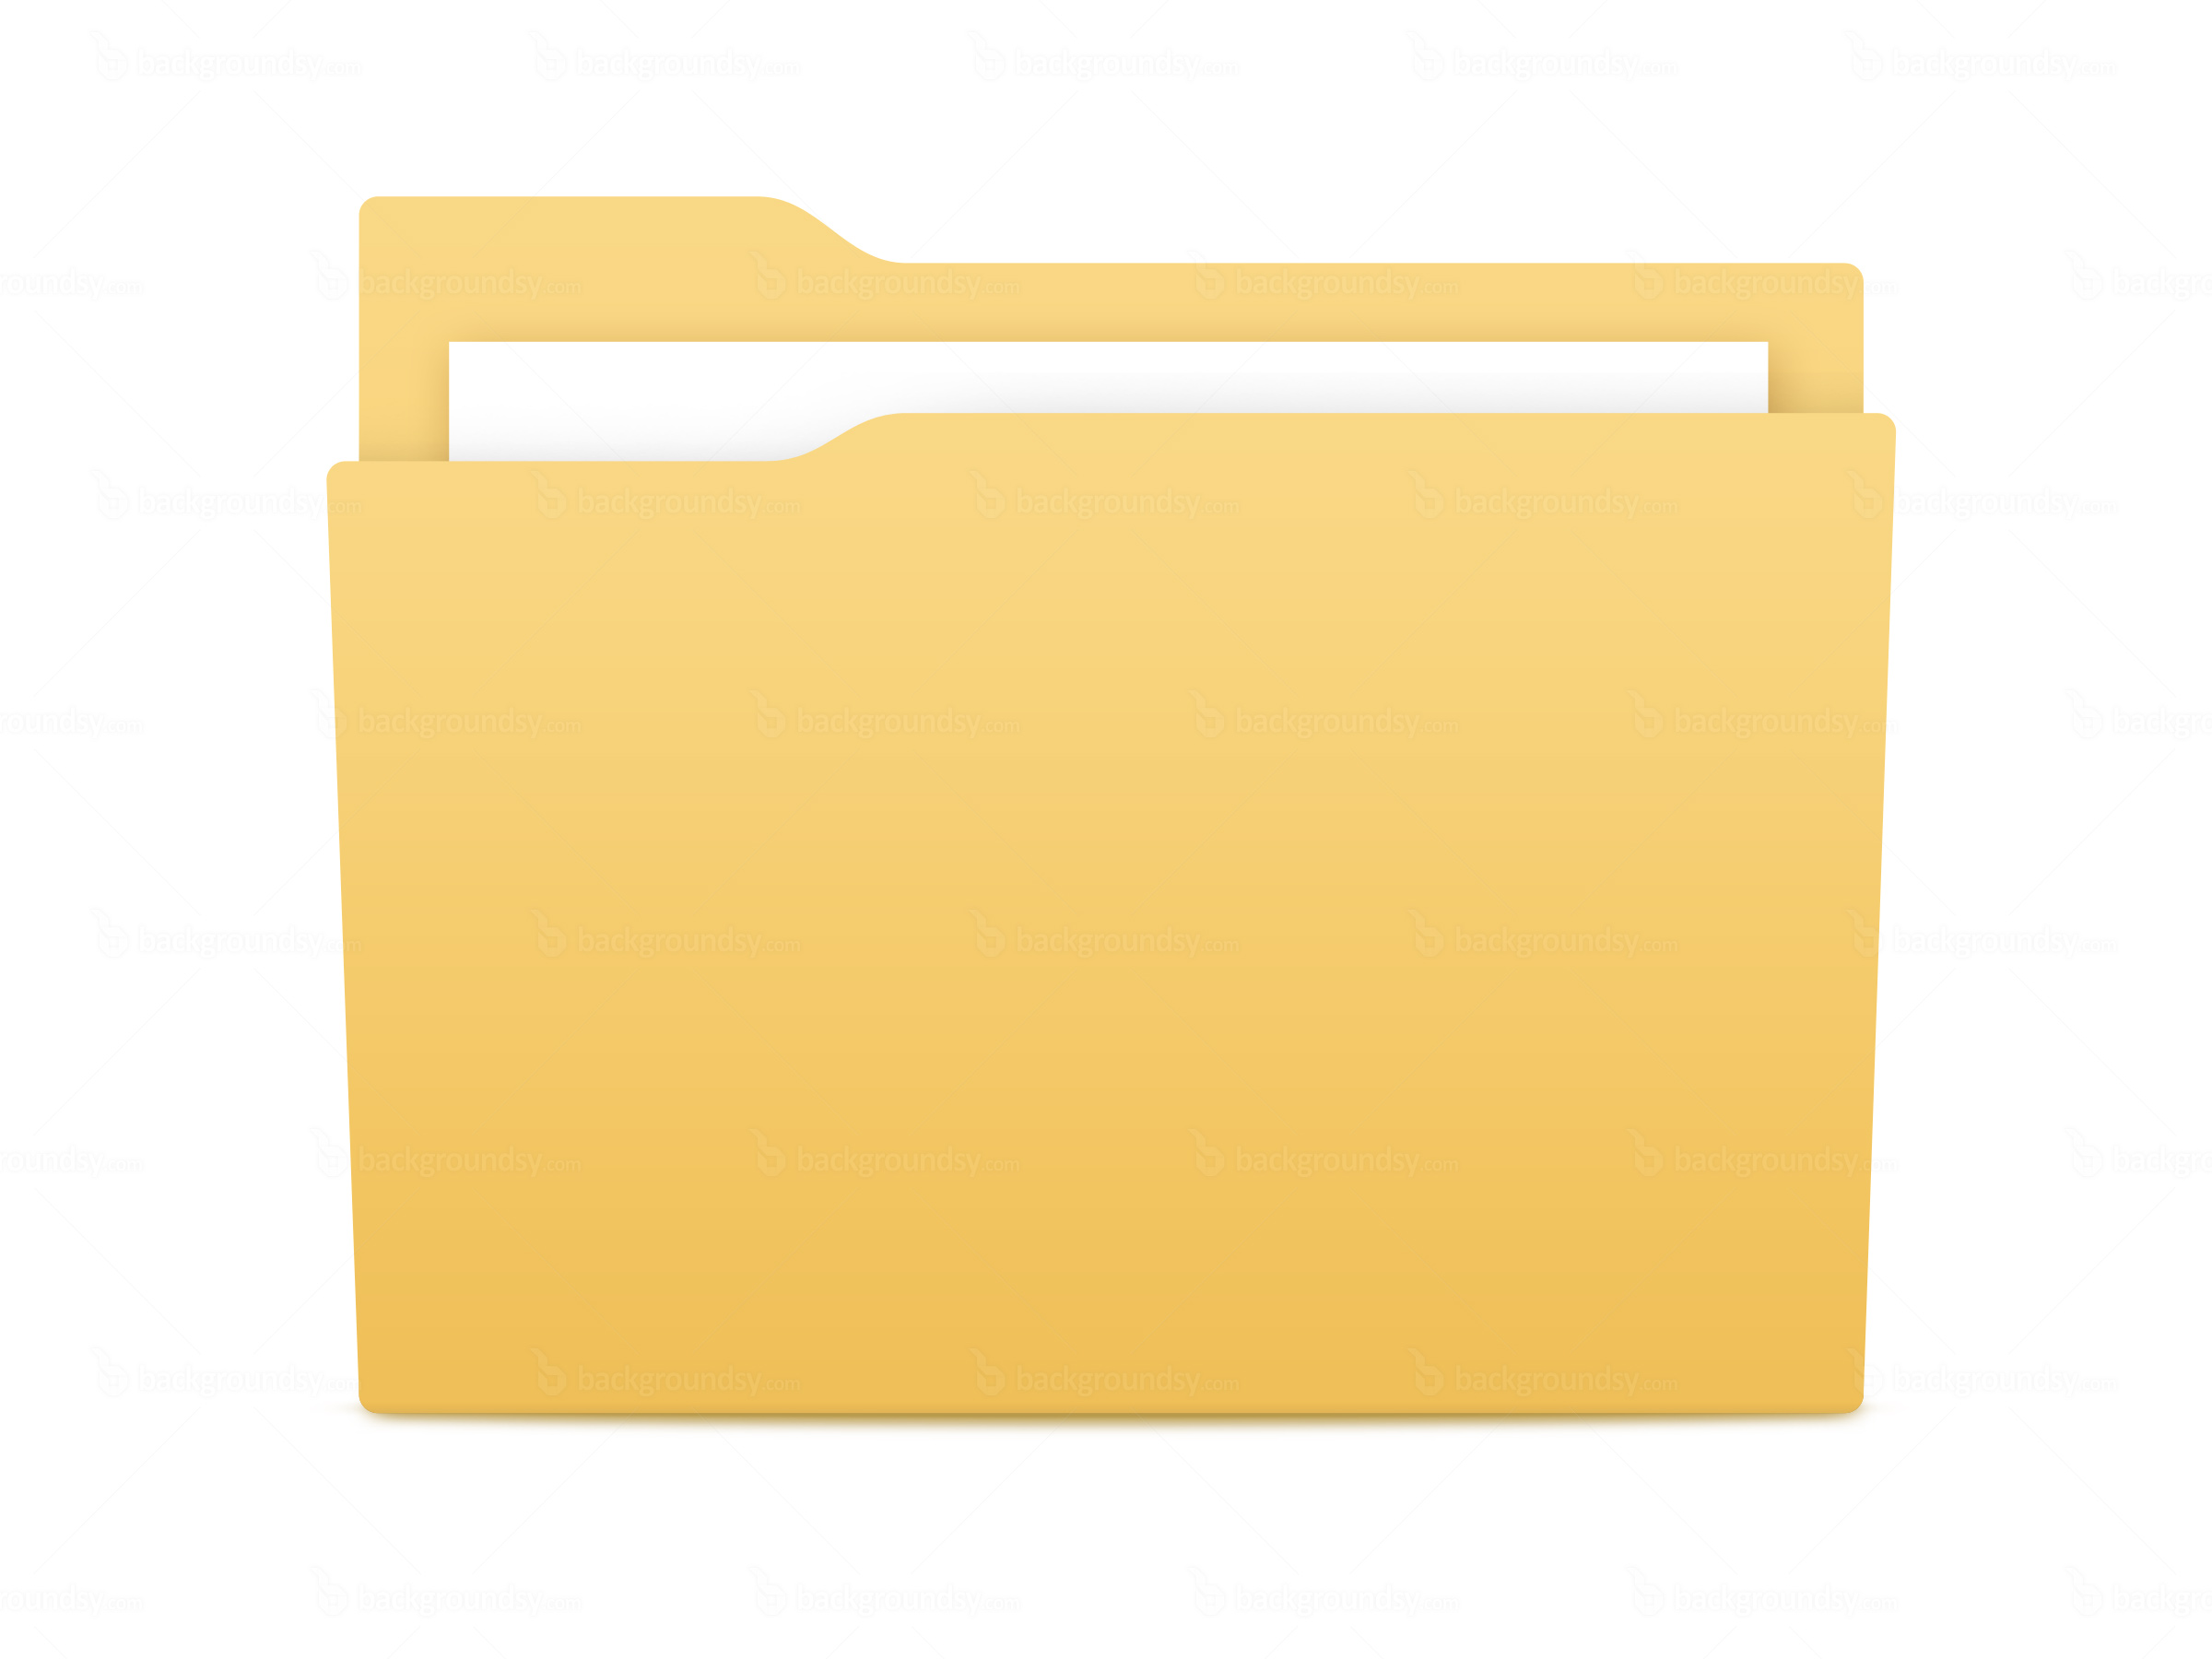 Education Folder Icon image #23346 - Folder PNG